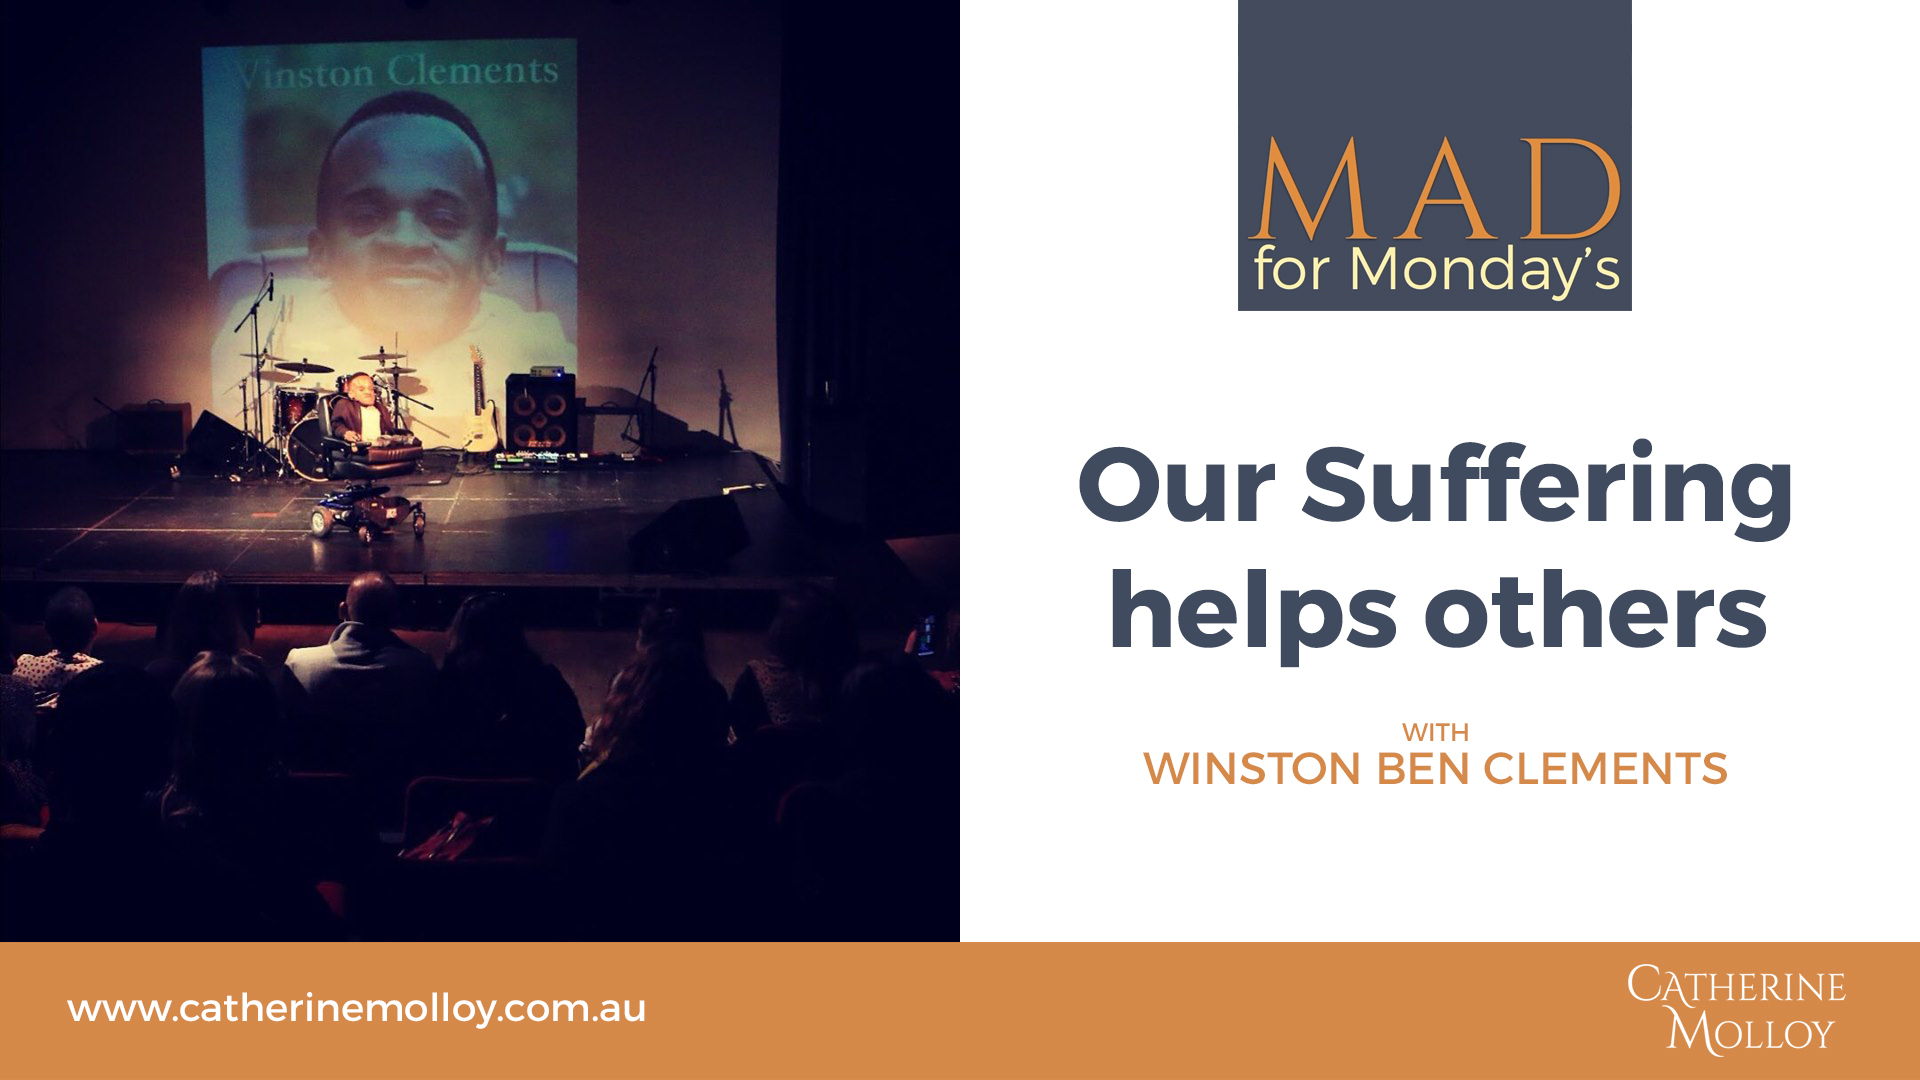 MAD for Monday's – Our Suffering helps others